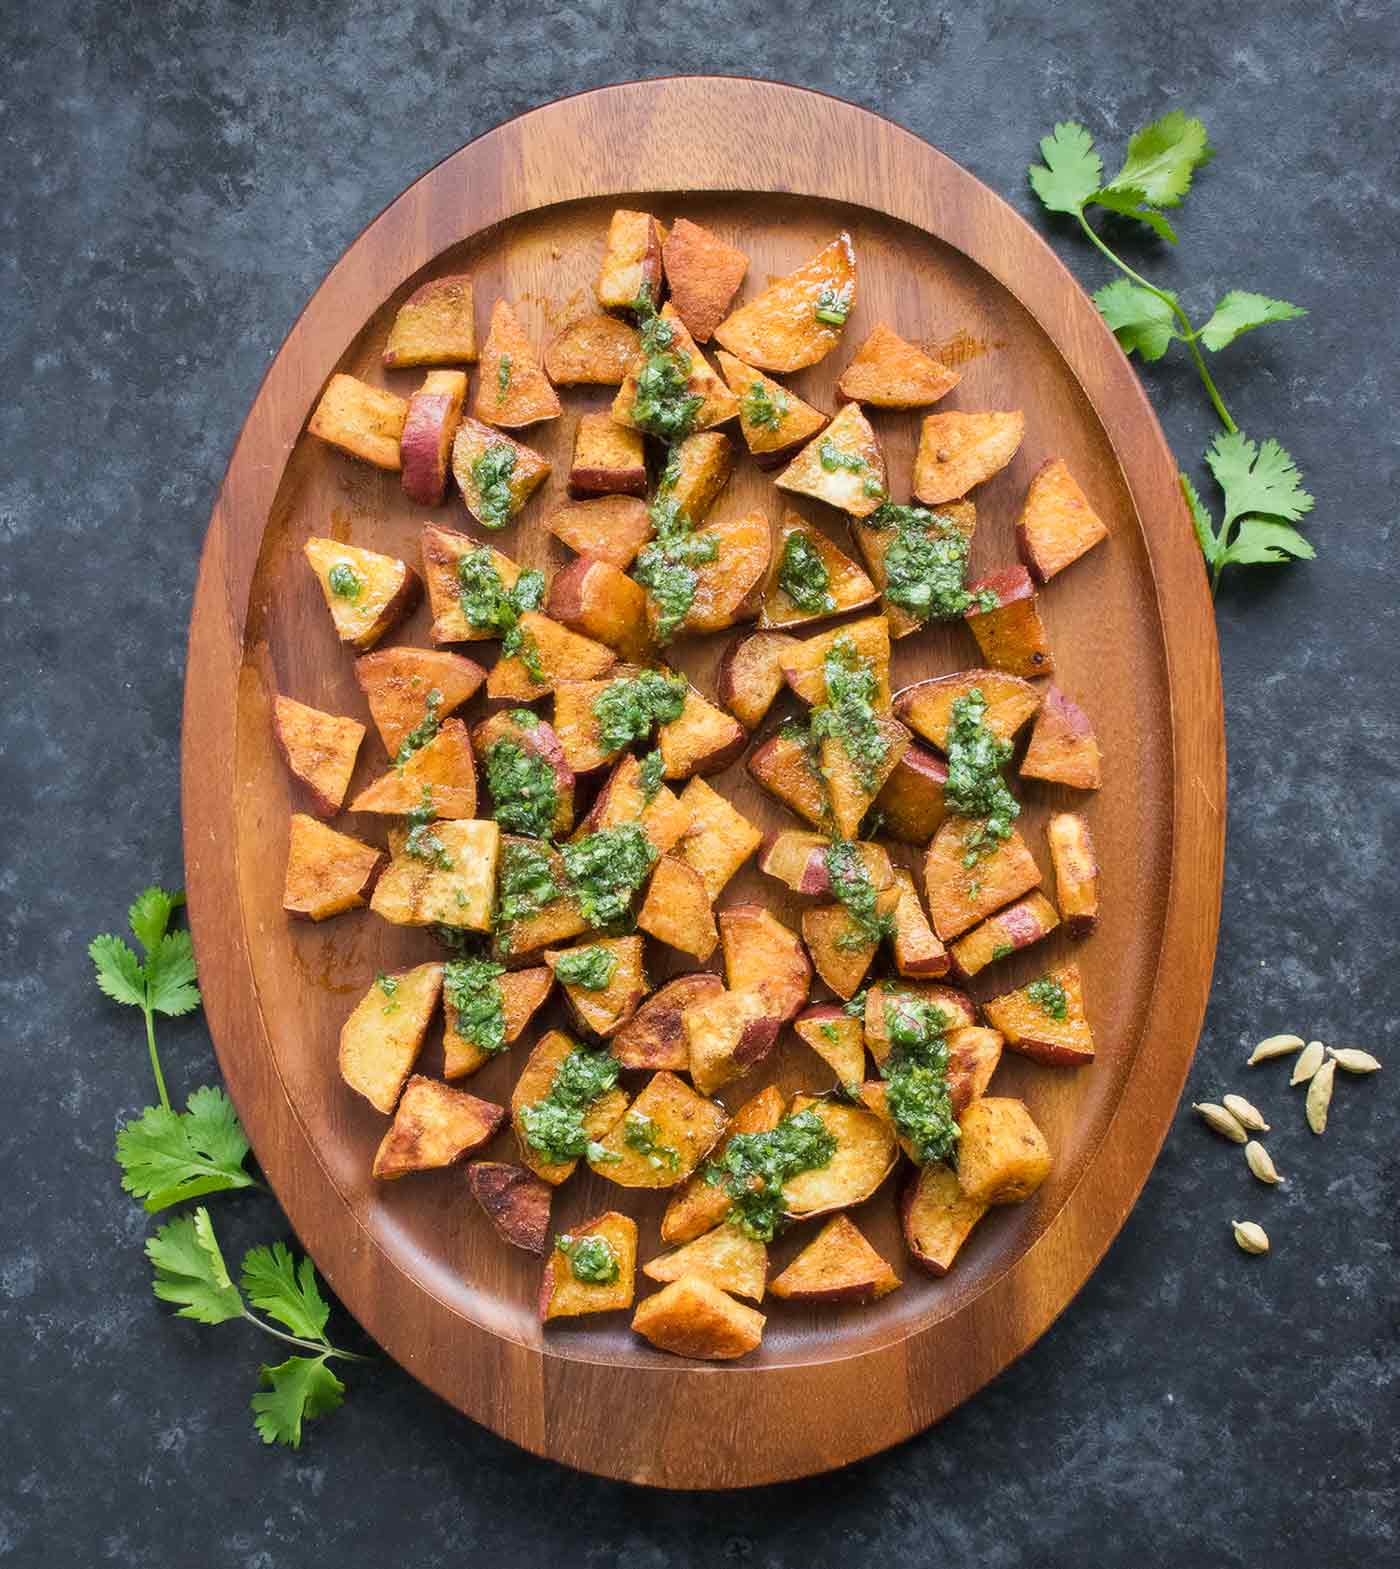 Spiced sweet potatoes on a serving board